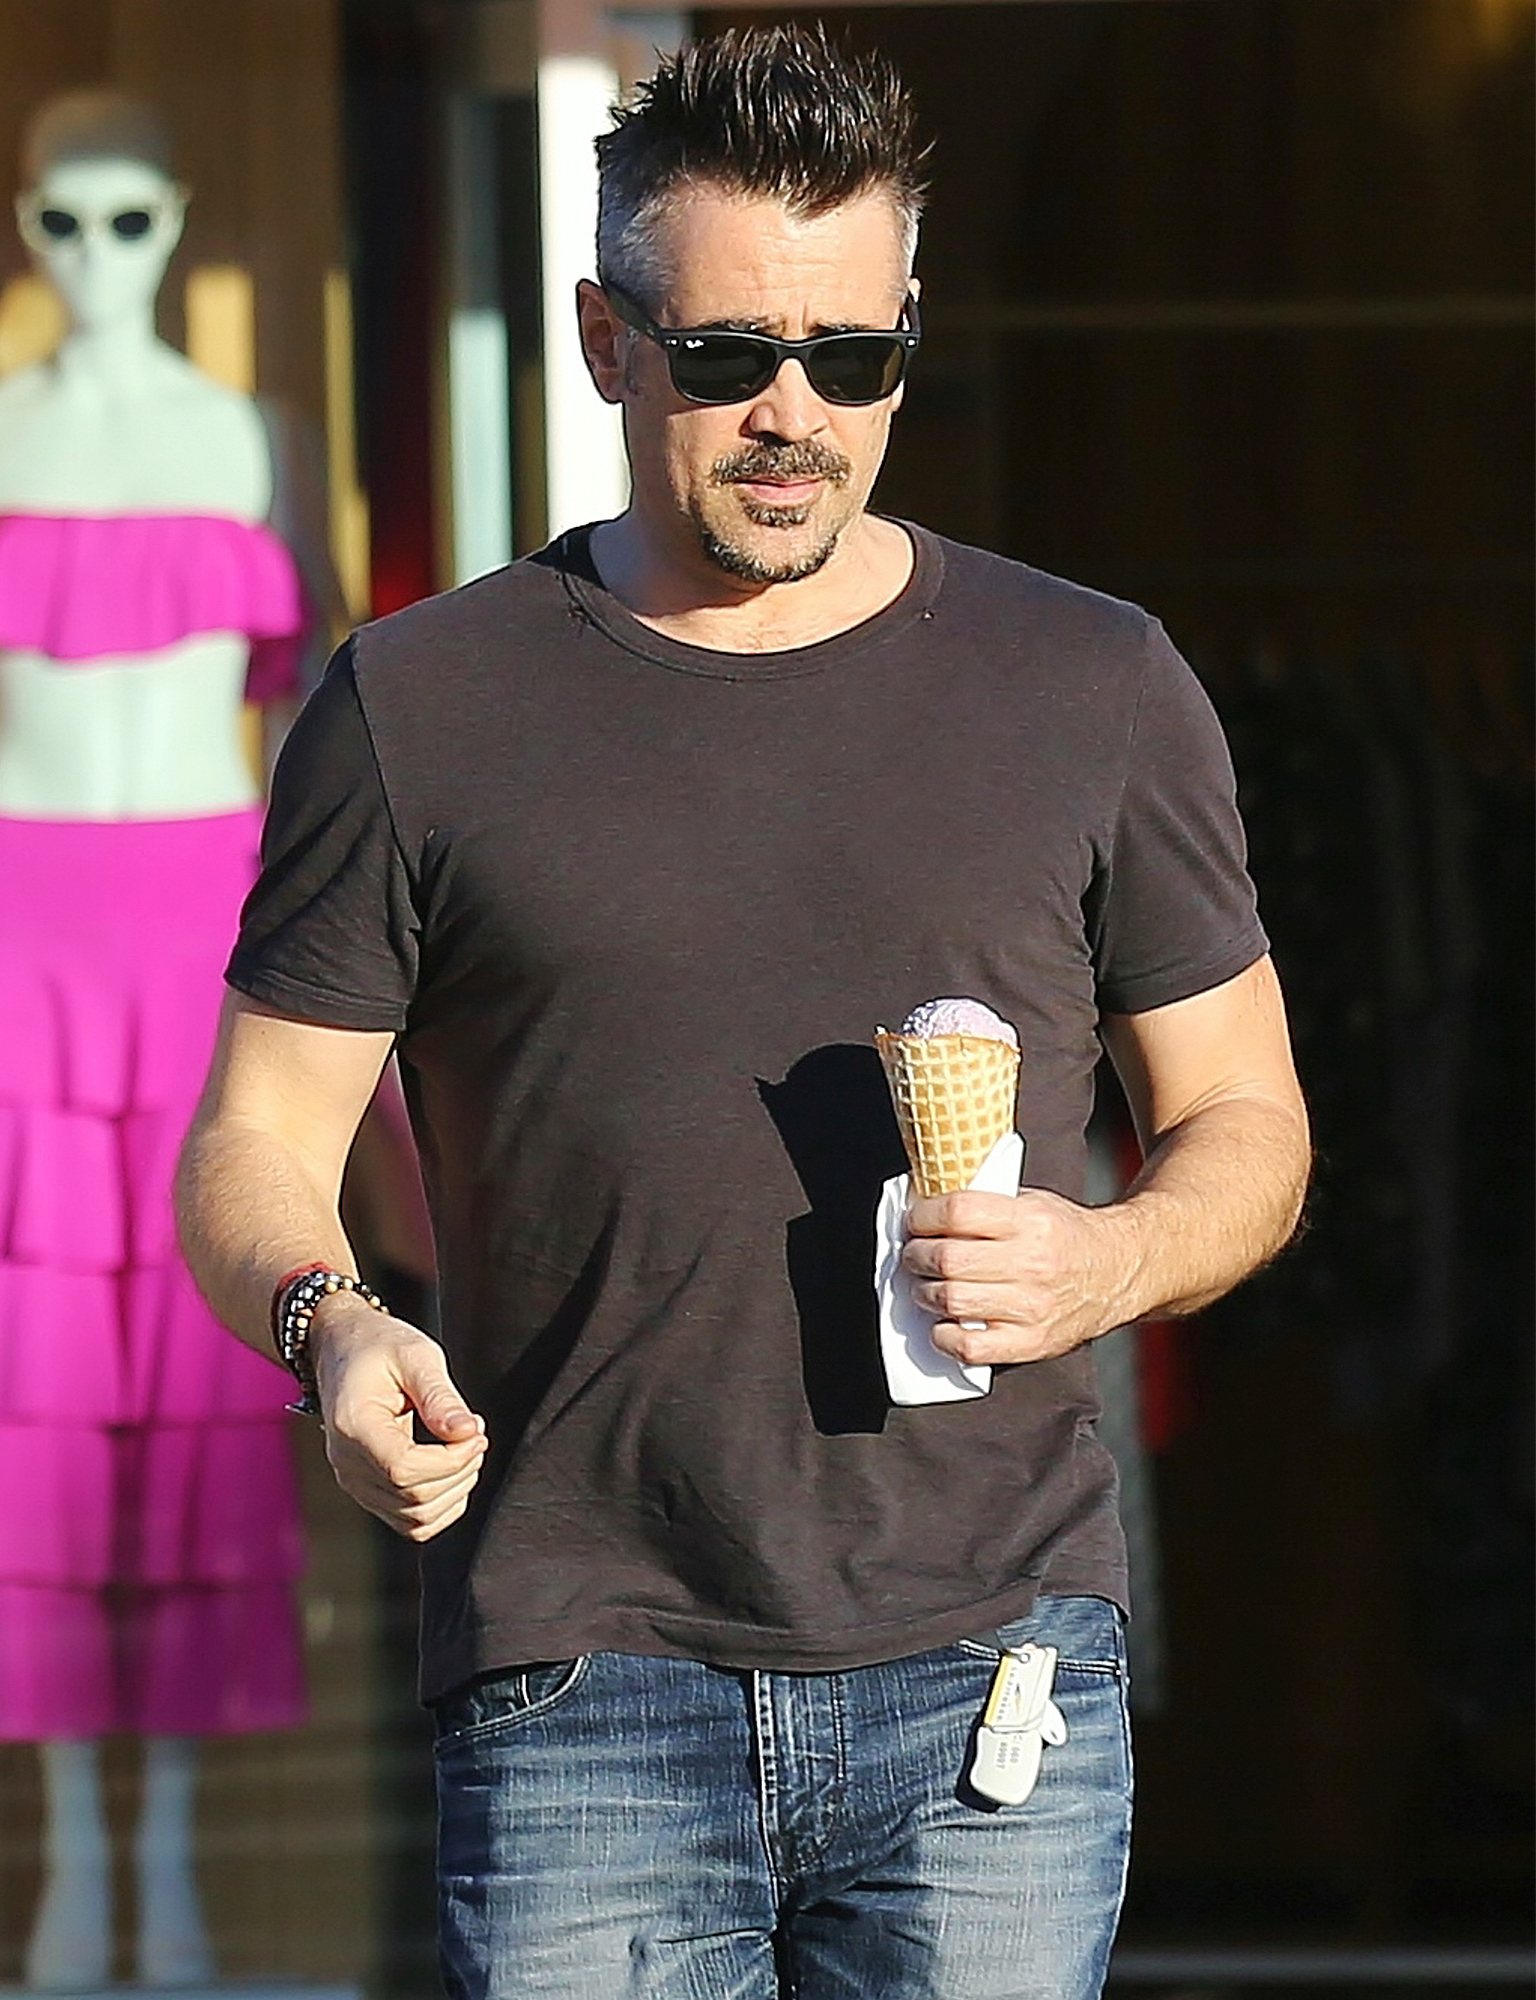 EXCLUSIVE: Colin Farrell Gets An Ice Cream In Los Angeles